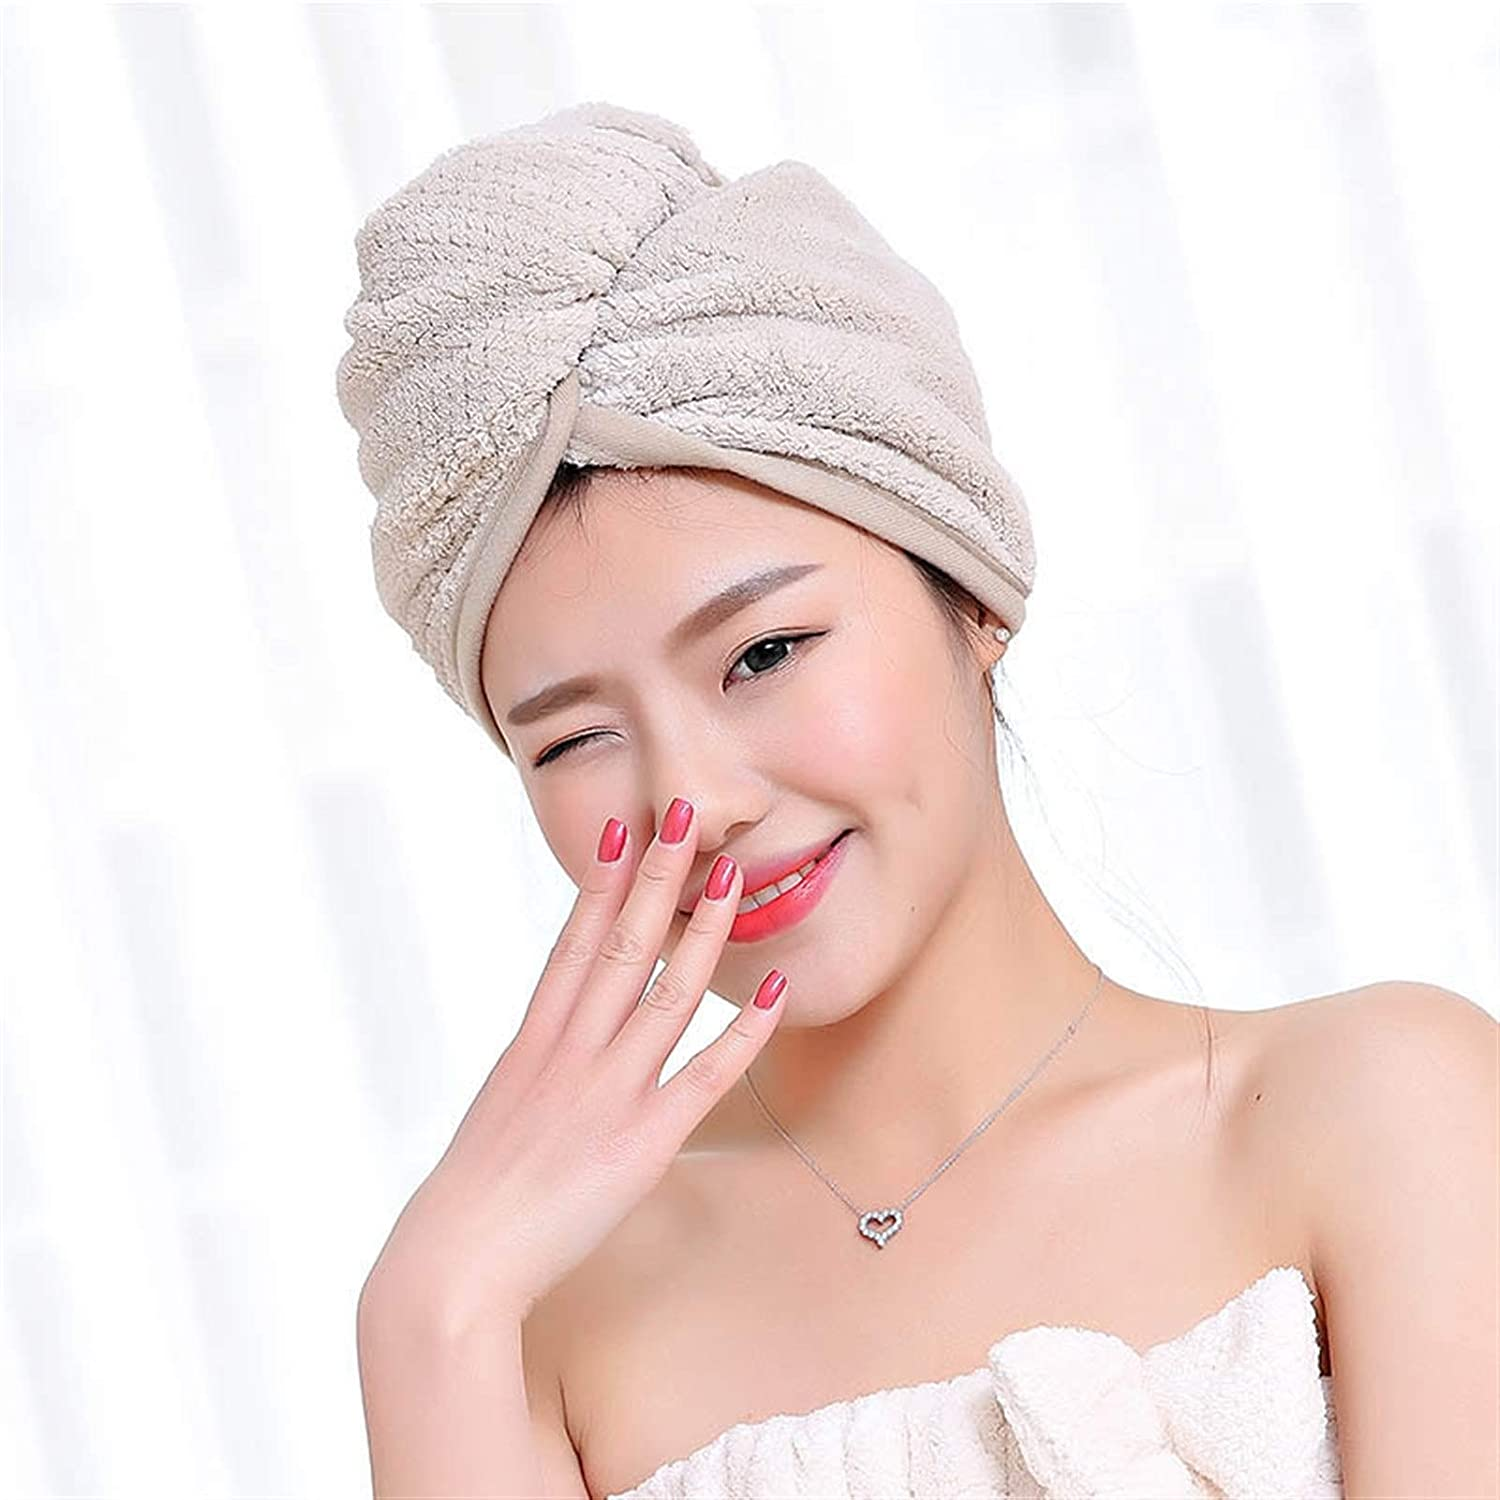 Changskj Dry Hair Towel OFFer 2360cm Quick Towels 1 Pc Microfiber Recommendation